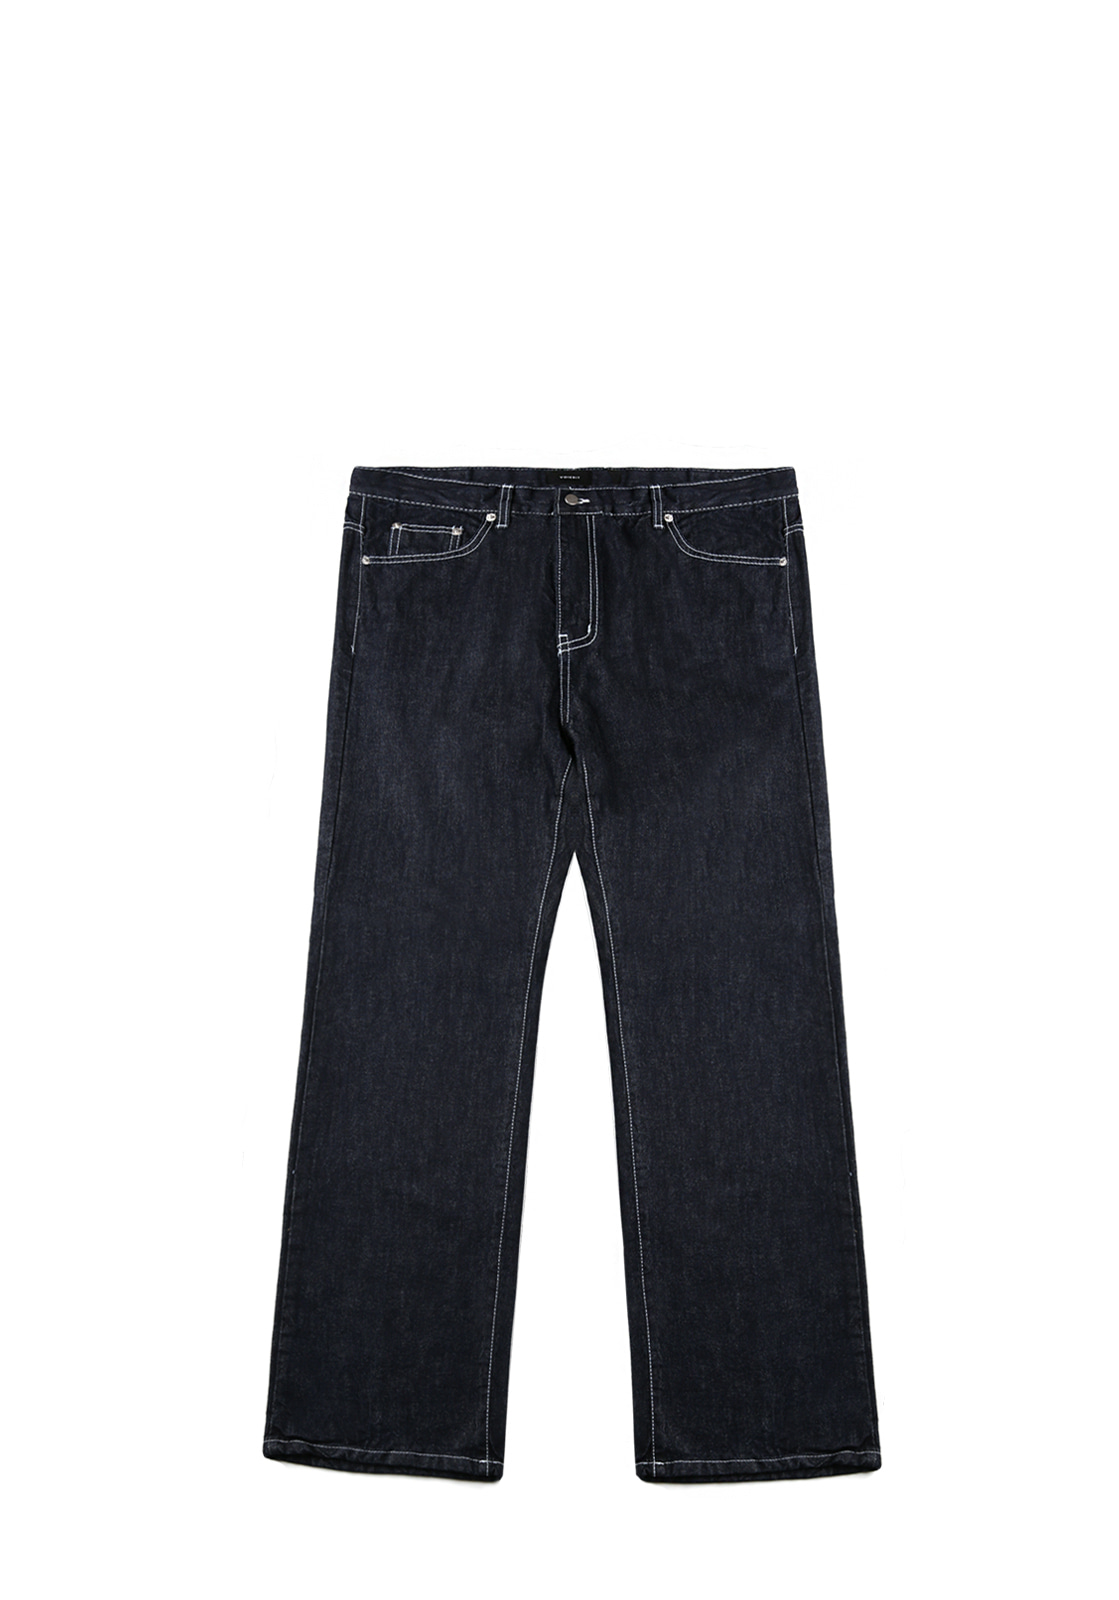 V231 STITCH WIDE DENIM PANTS  INDIGO